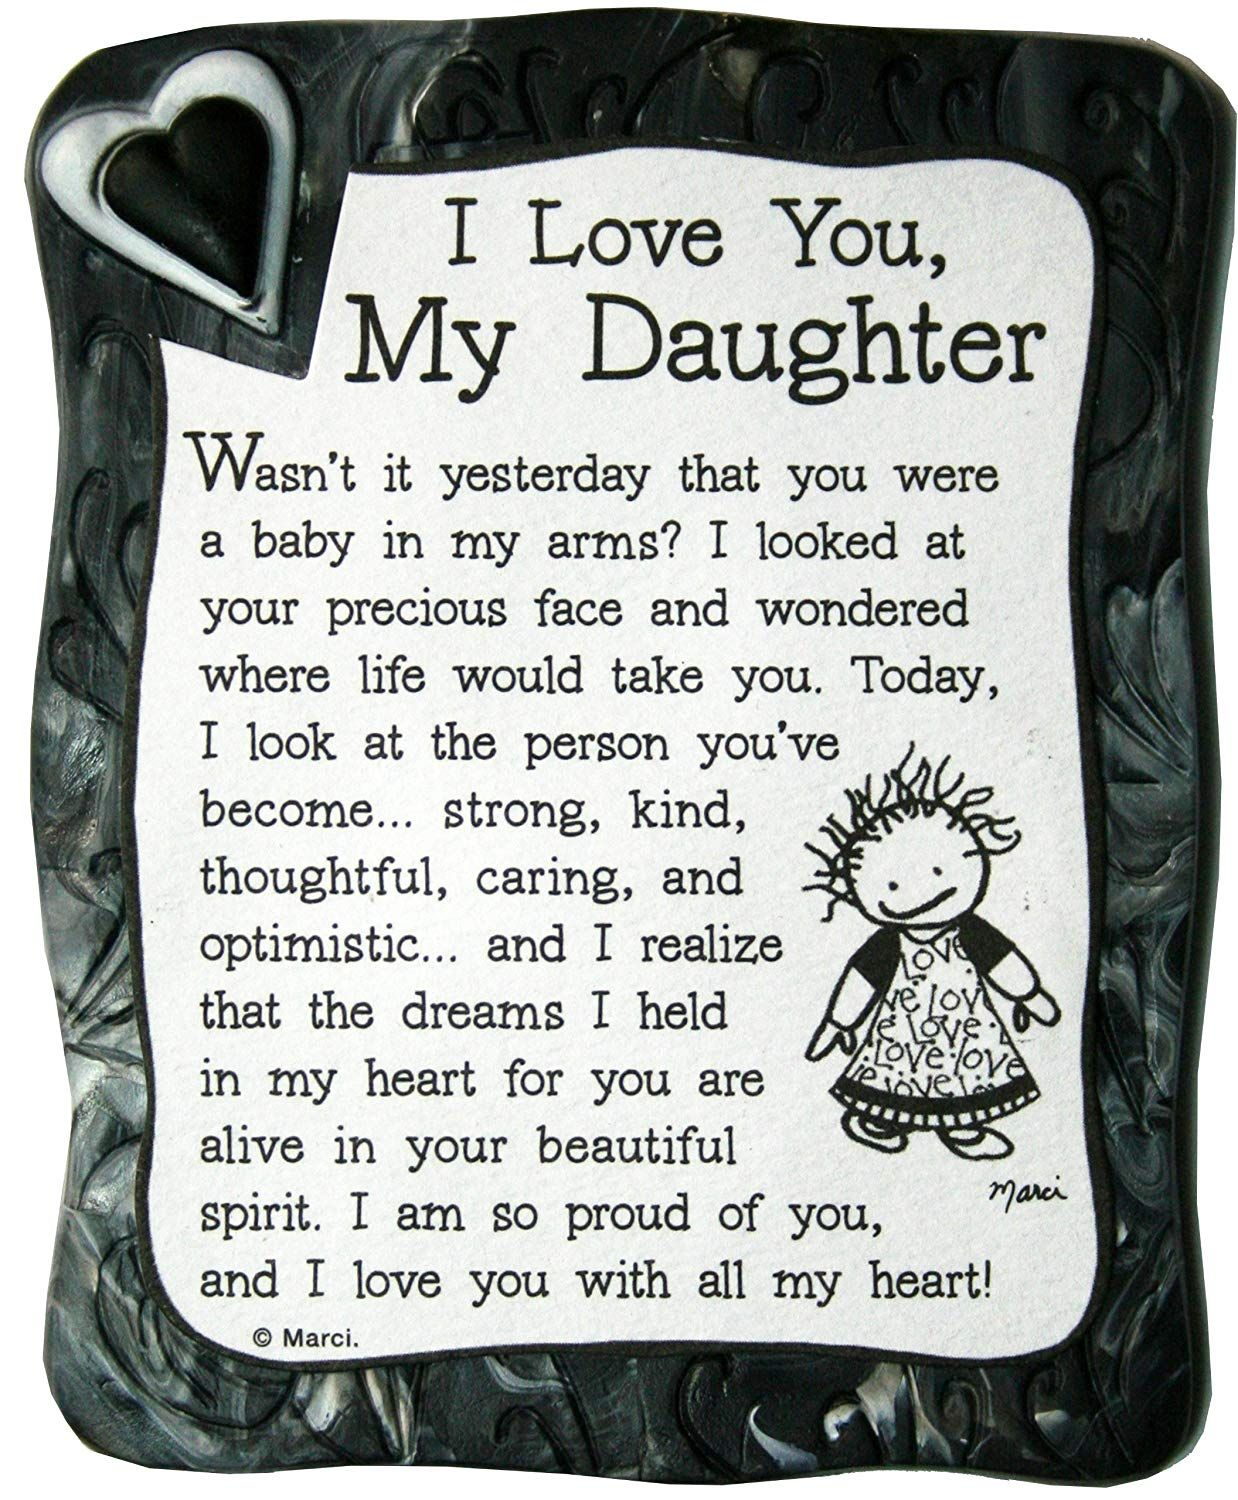 "Amazon.com: Sculpted Magnet: I Love You My Daughter, 7.7"" x 7.7"